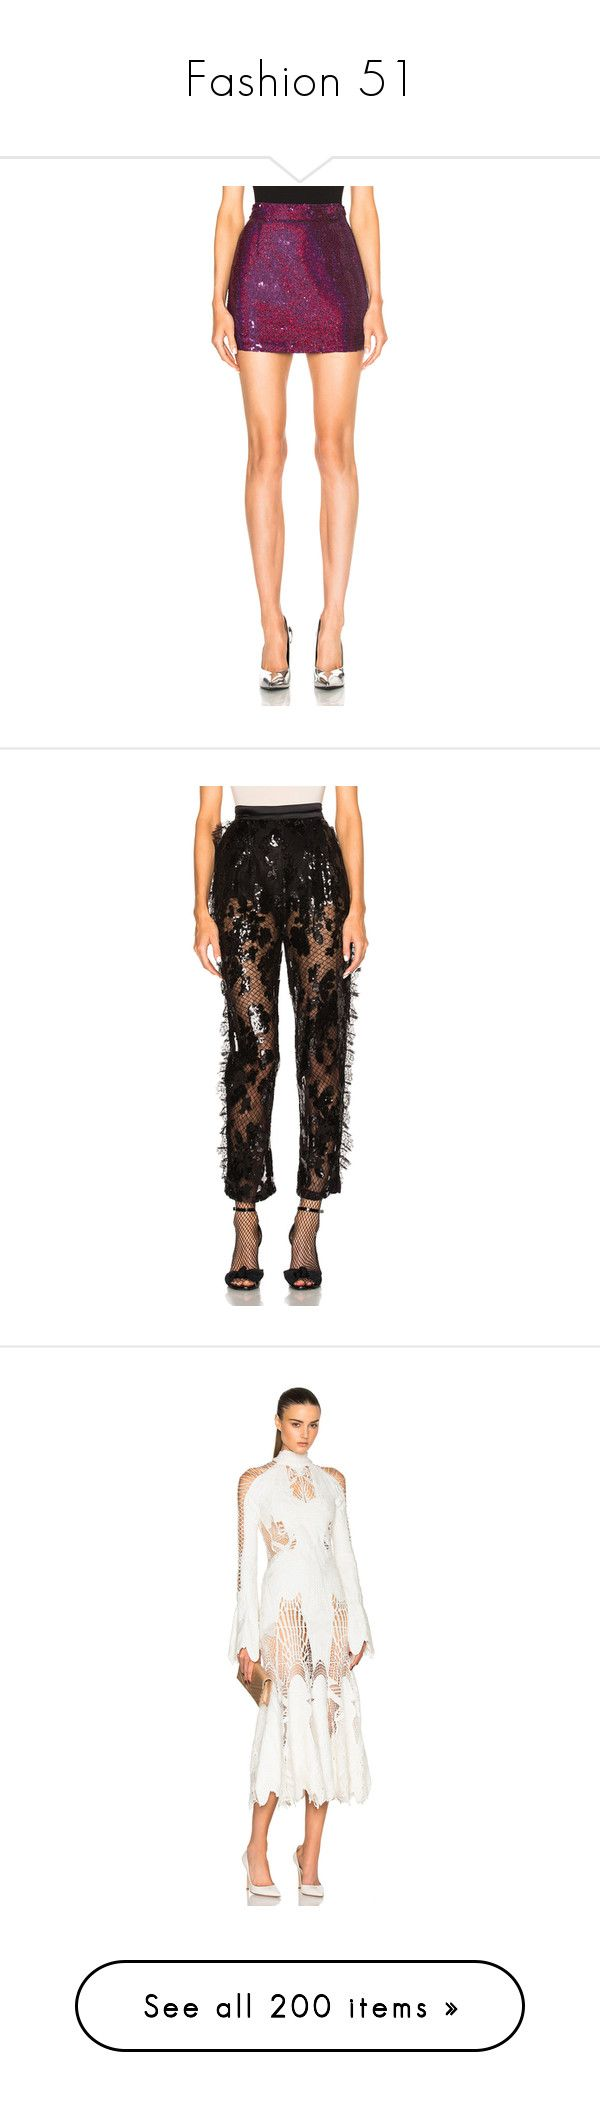 """""""Fashion 51"""" by kira-m1999 ❤ liked on Polyvore featuring skirts, mini skirts, short sequin skirt, red mini skirt, sequin mini skirt, short red skirt, short skirts, pants, sequined pants and lace trousers"""